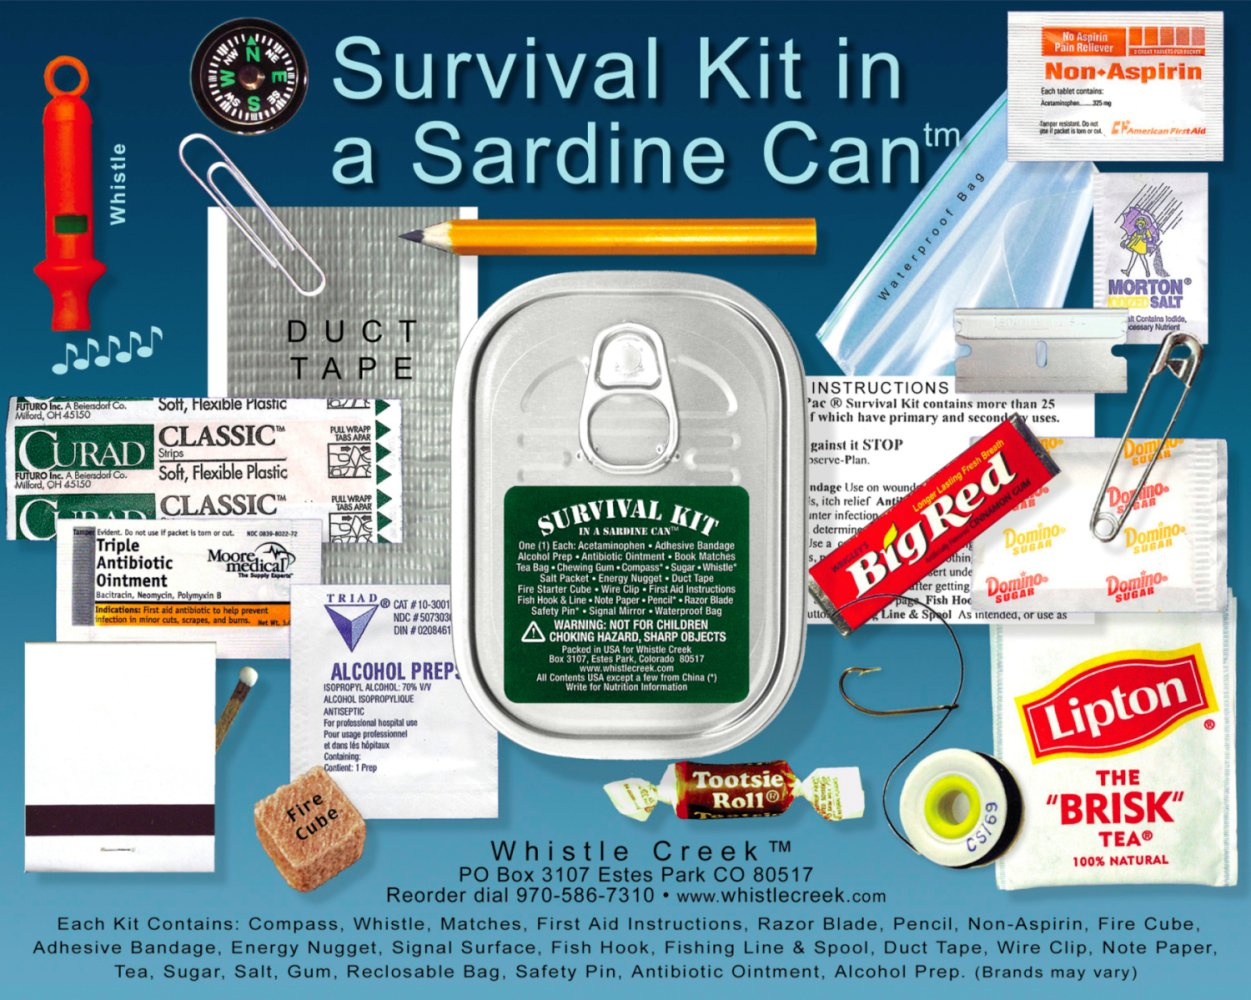 Emergency Survival Kit in a Sardine Can